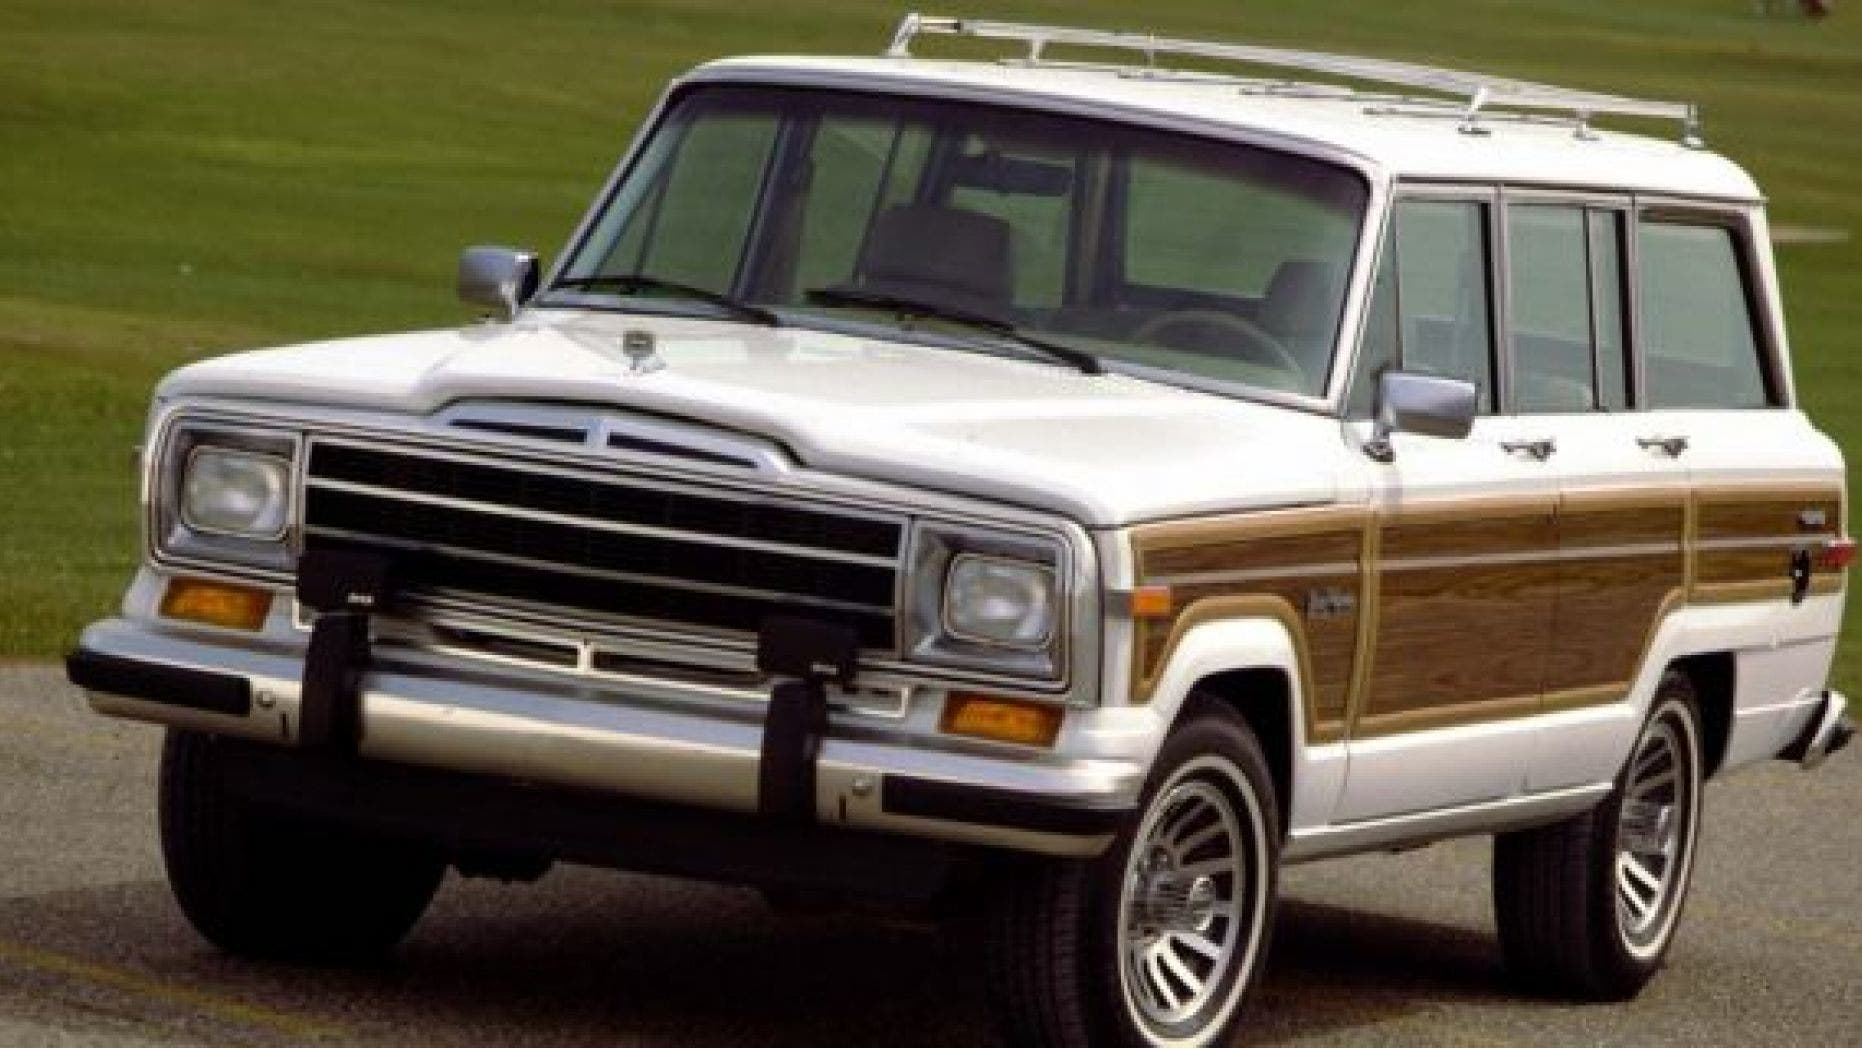 The new Jeep Wagoneer will be a luxury truck-based SUV just like the original.